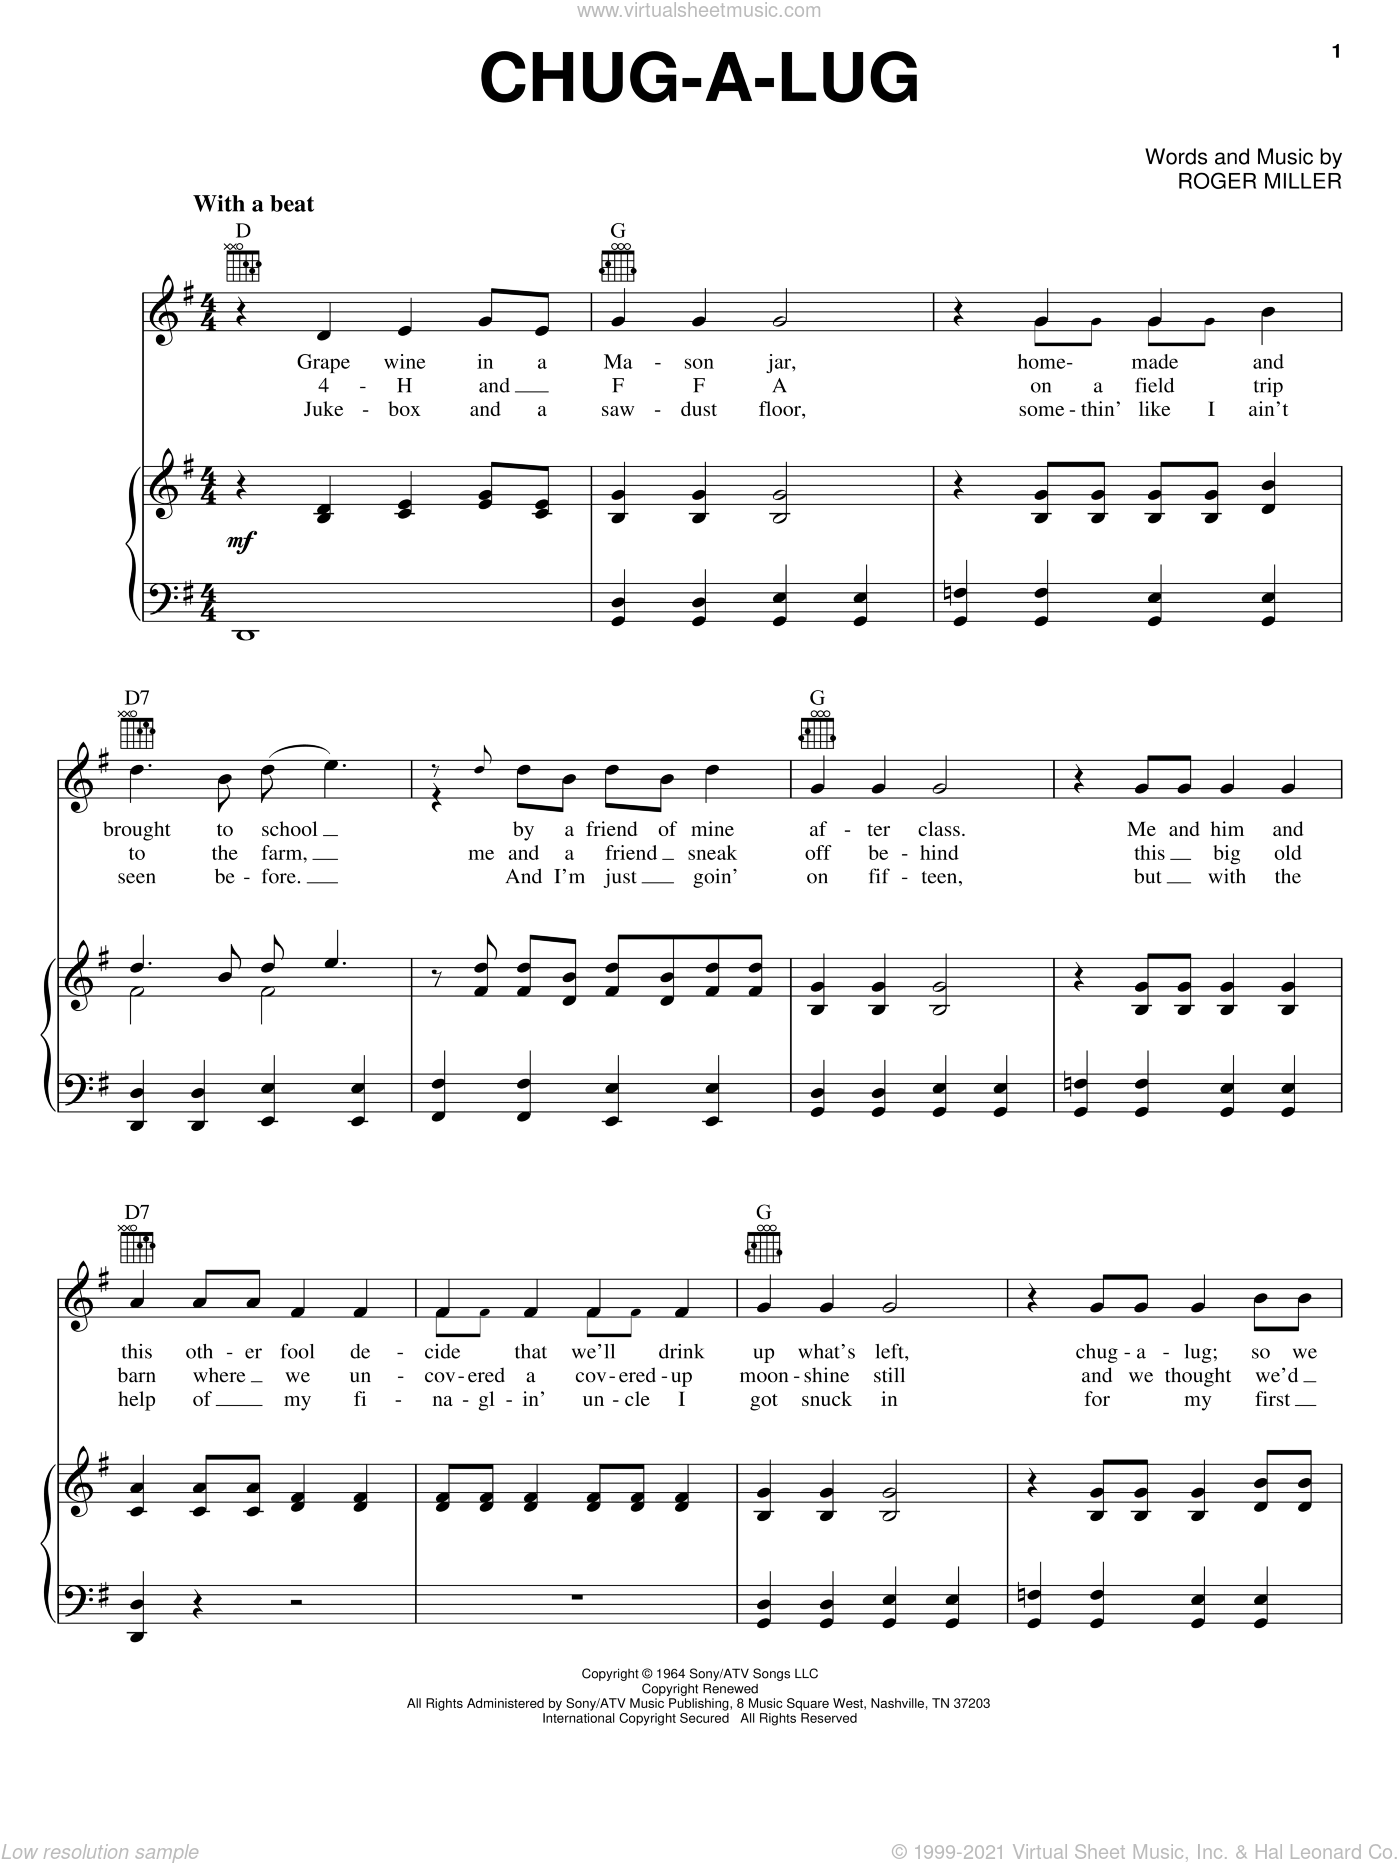 Chug-A-Lug sheet music for voice, piano or guitar by Roger Miller. Score Image Preview.